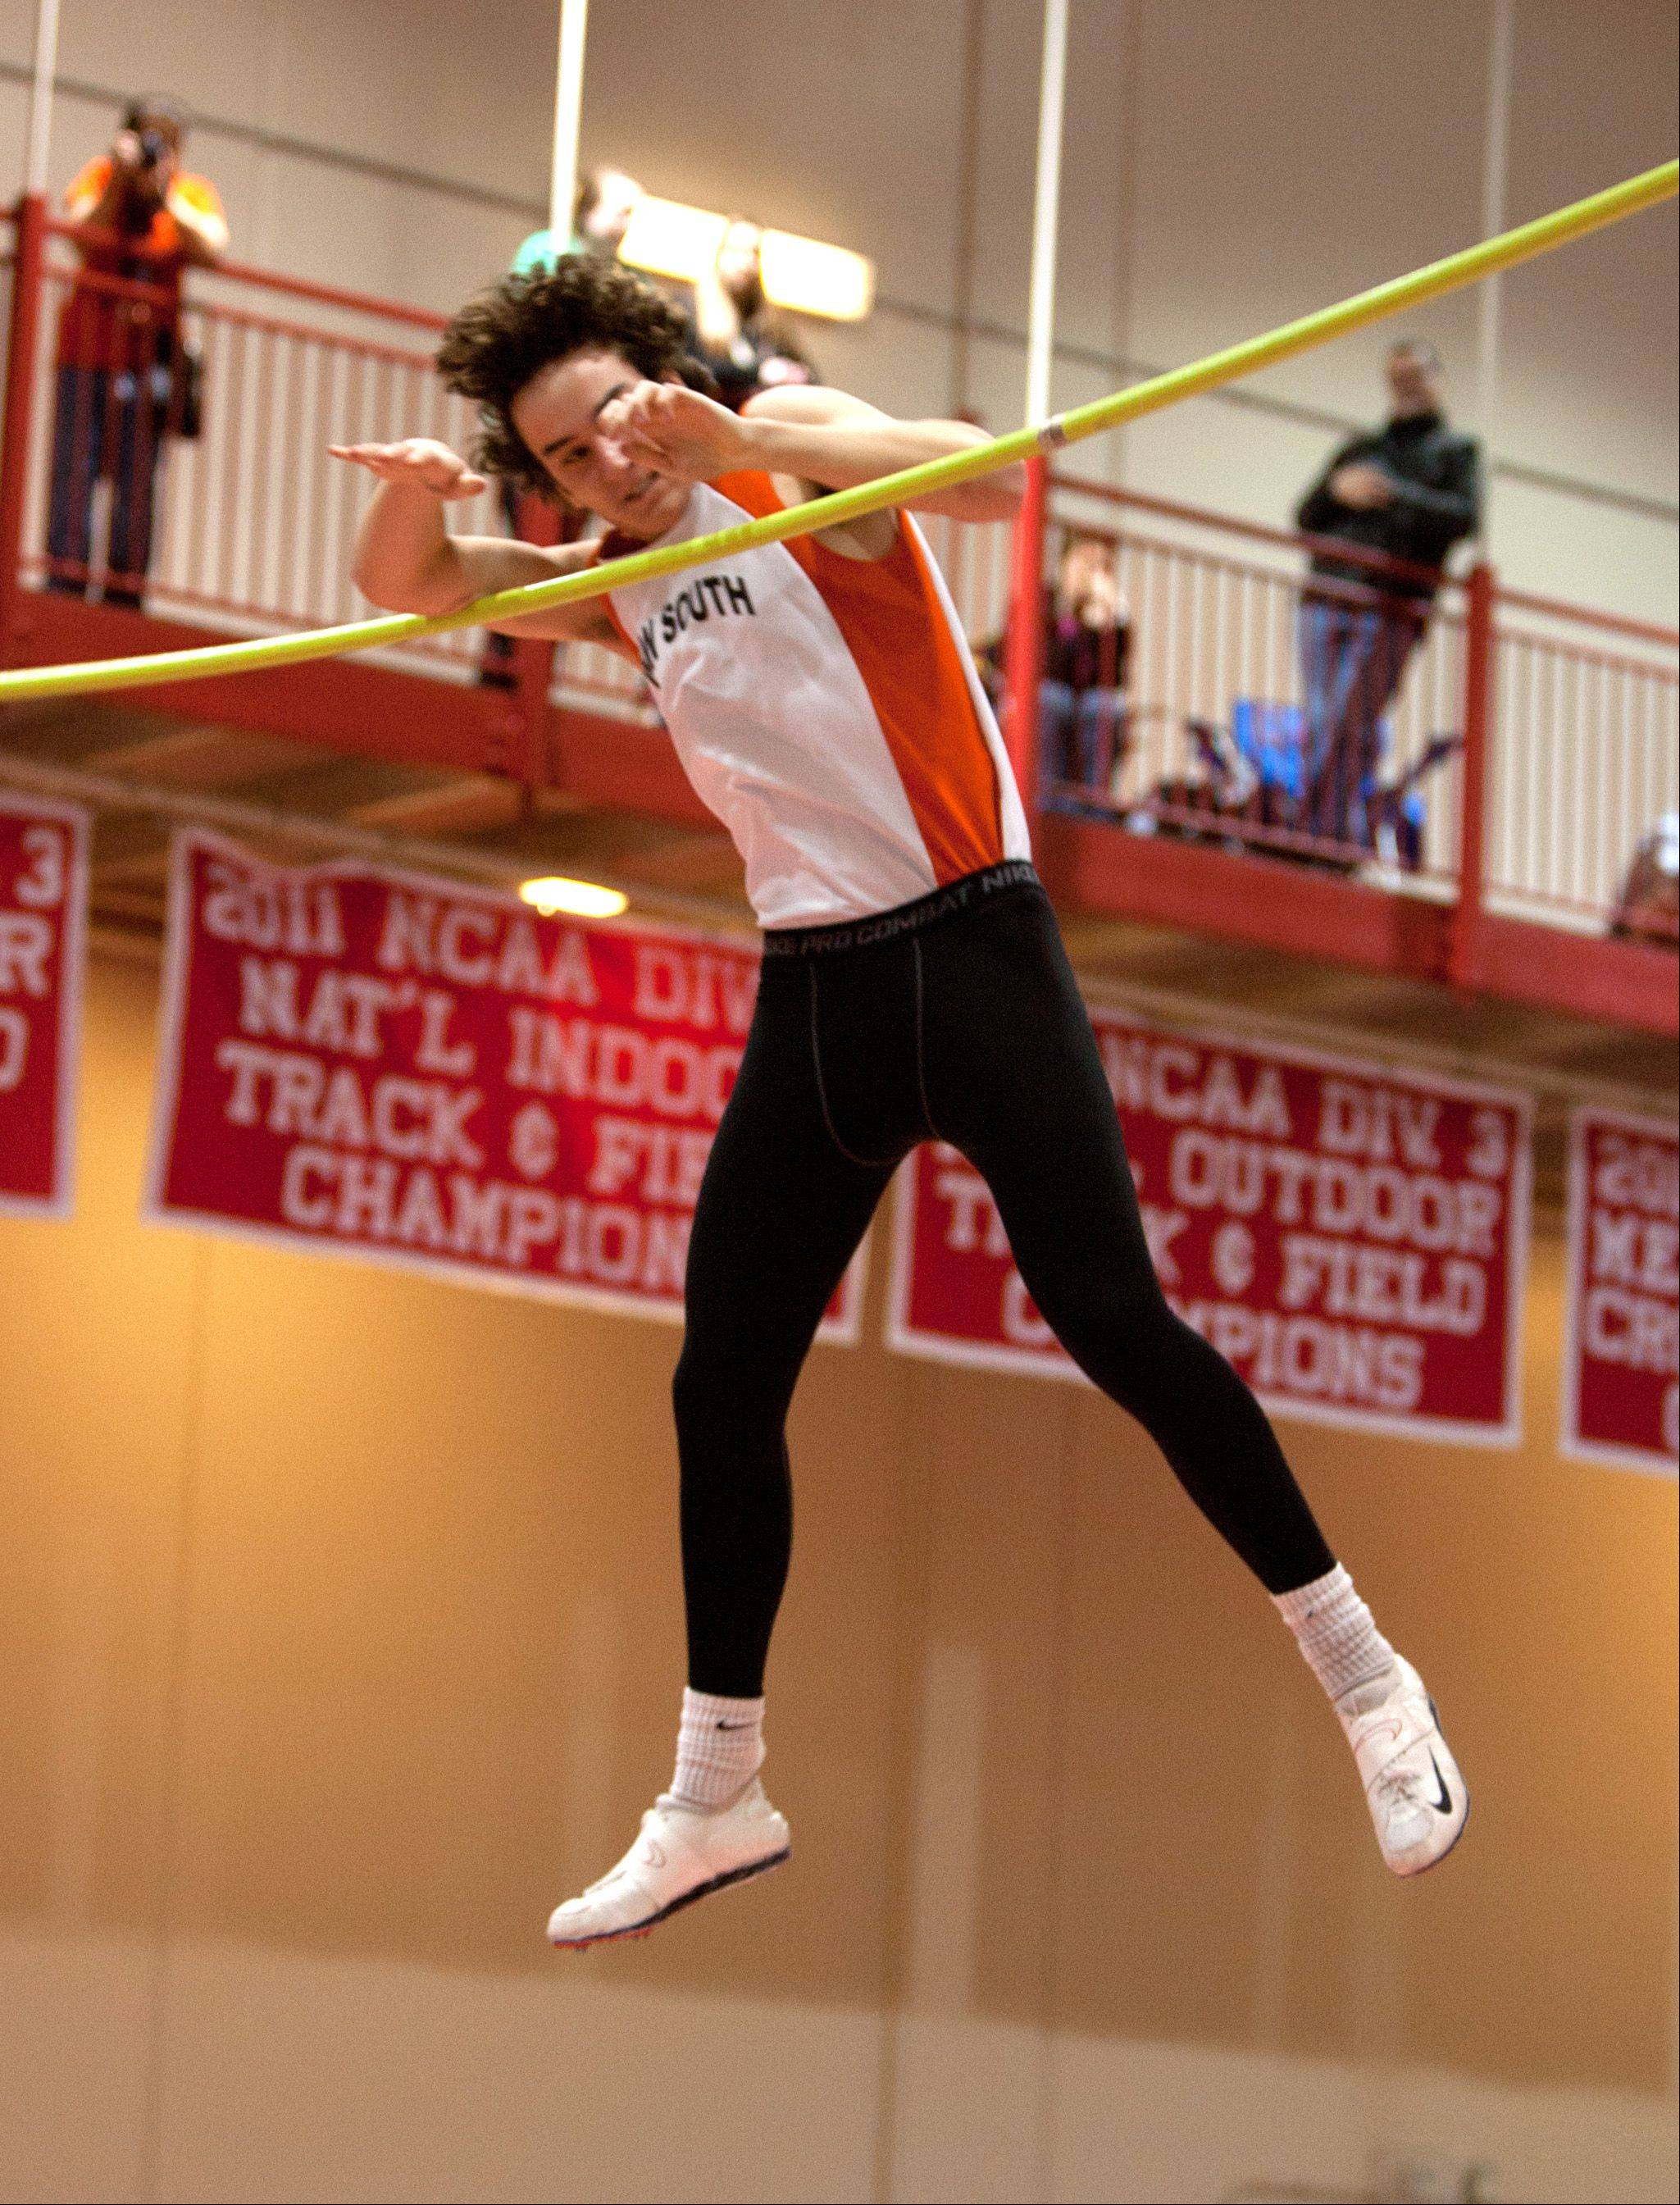 Wheaton Warrenville South's Mike Koehne knocks down the bar in the pole vault event, during the DuPage Valley Conference boys track meet.